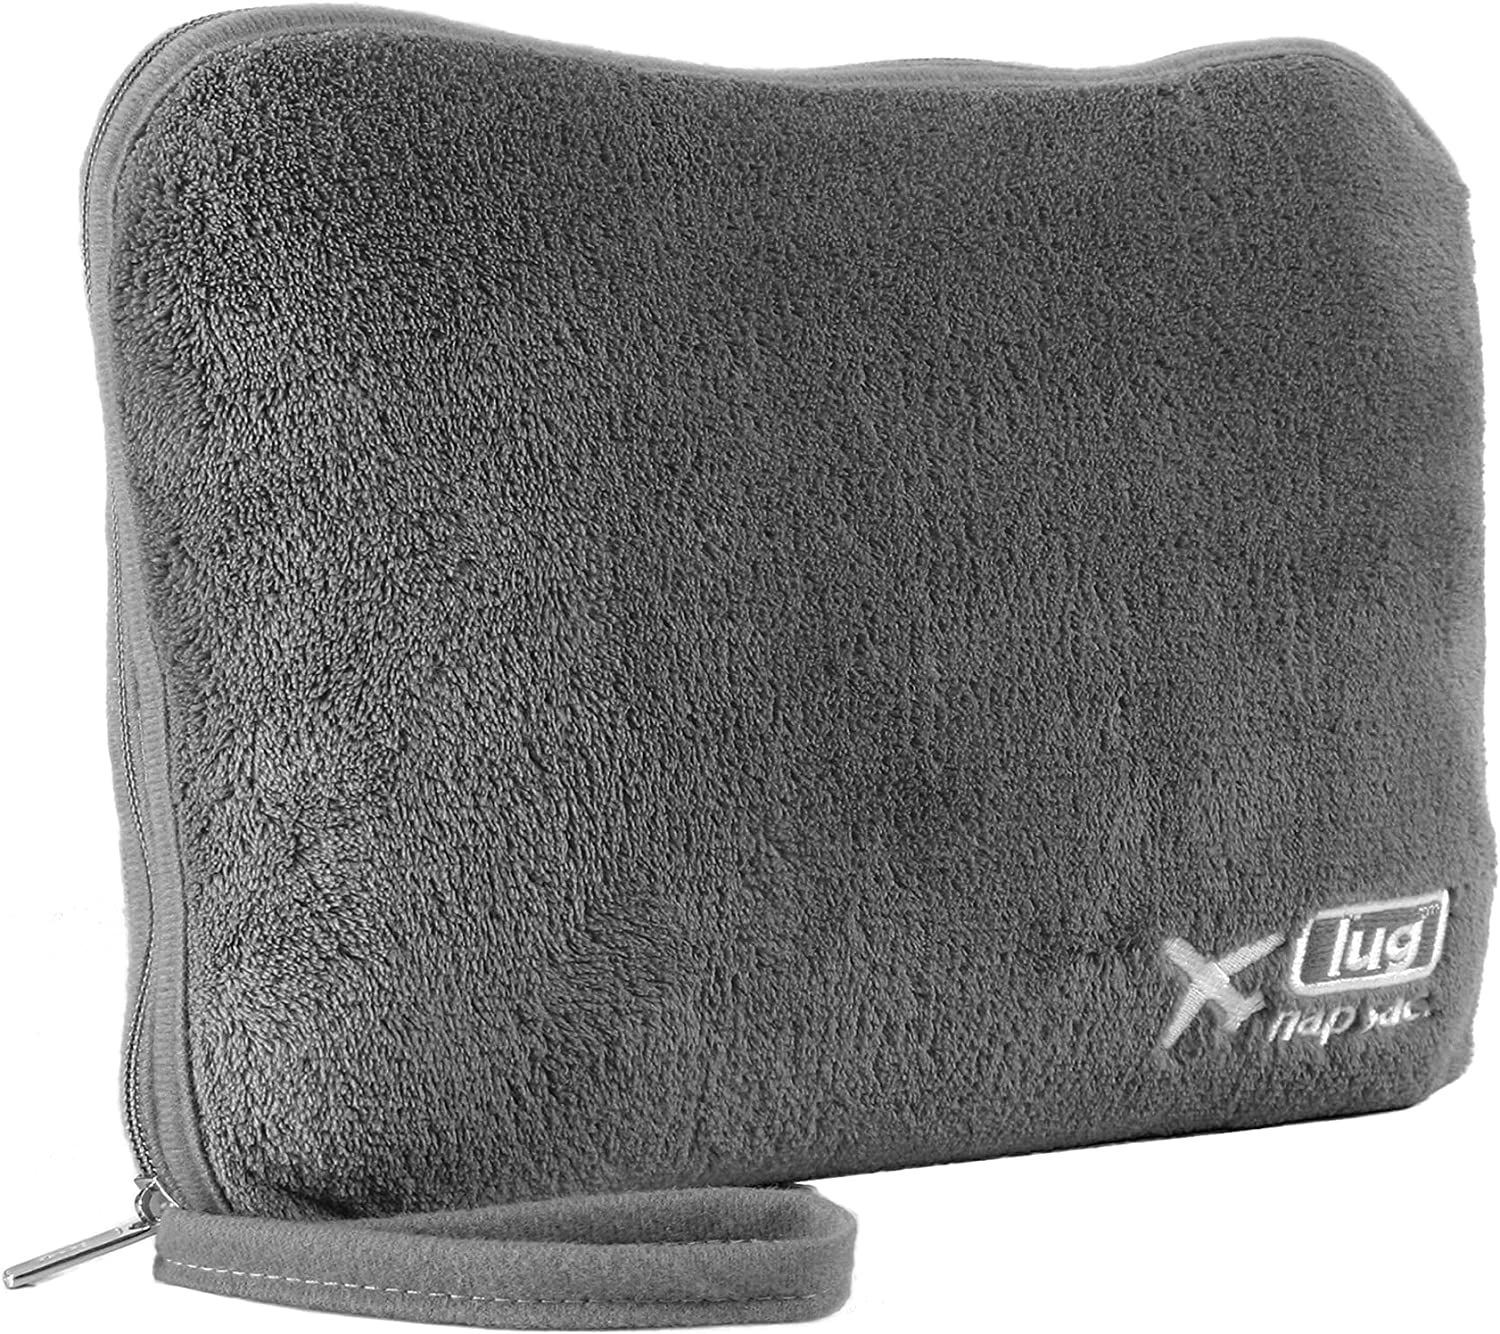 Lug Fort Worth Mall Nap Sac Easy-to-use Blanket Pillow Fog Size Grey One